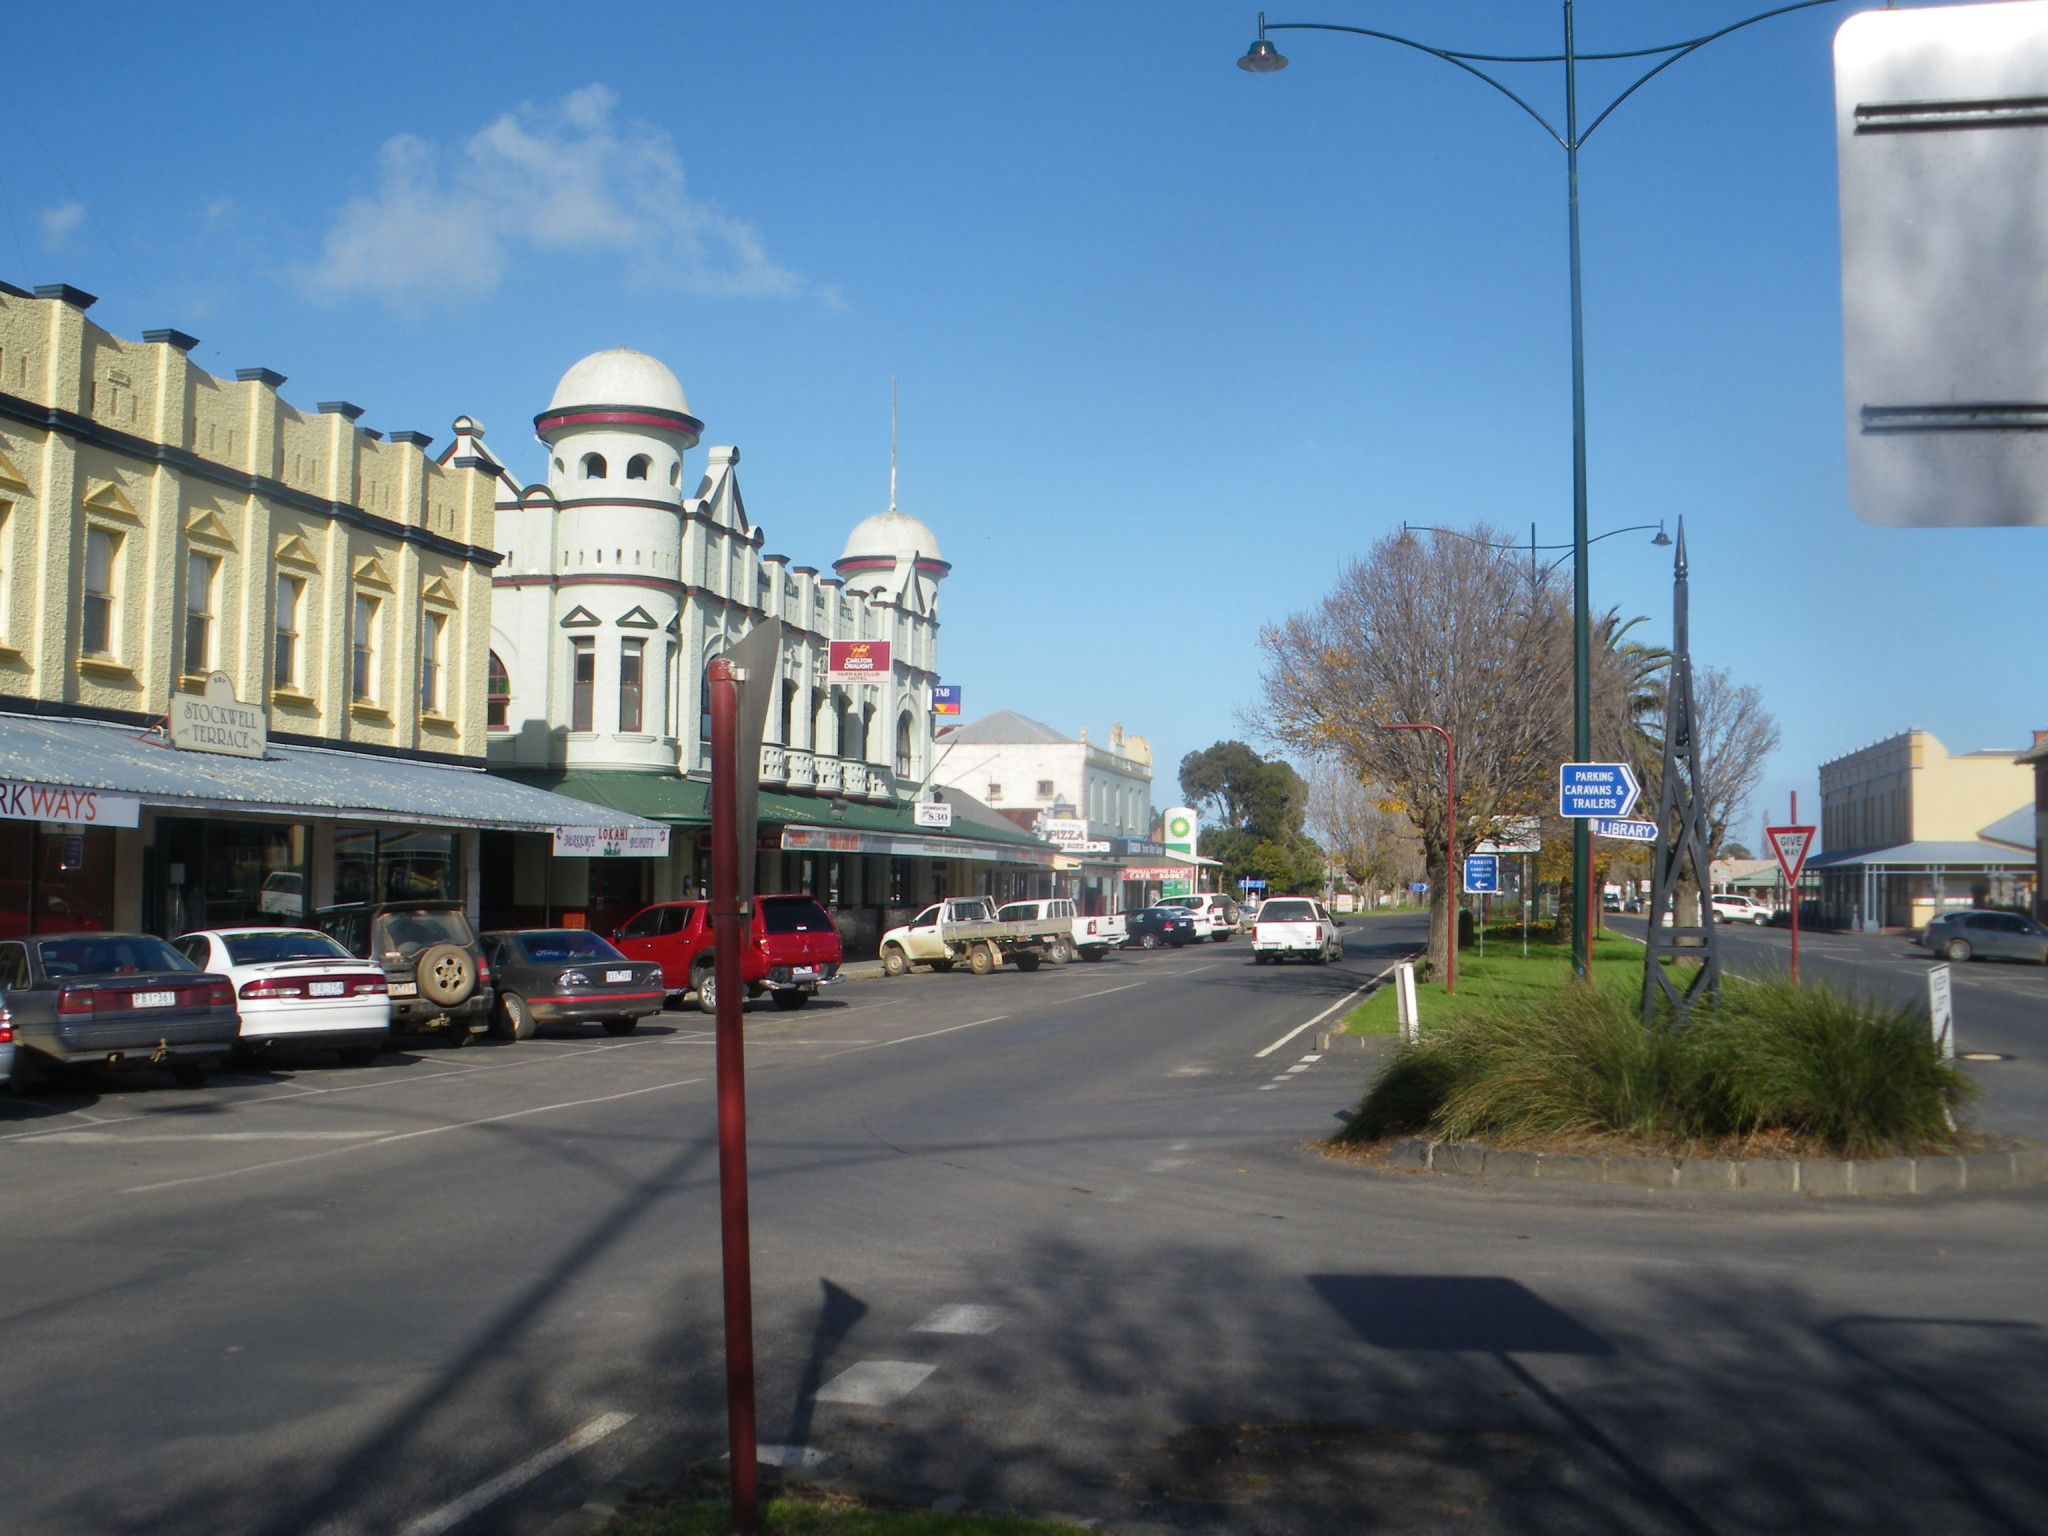 Backpacking in Yarram Australia